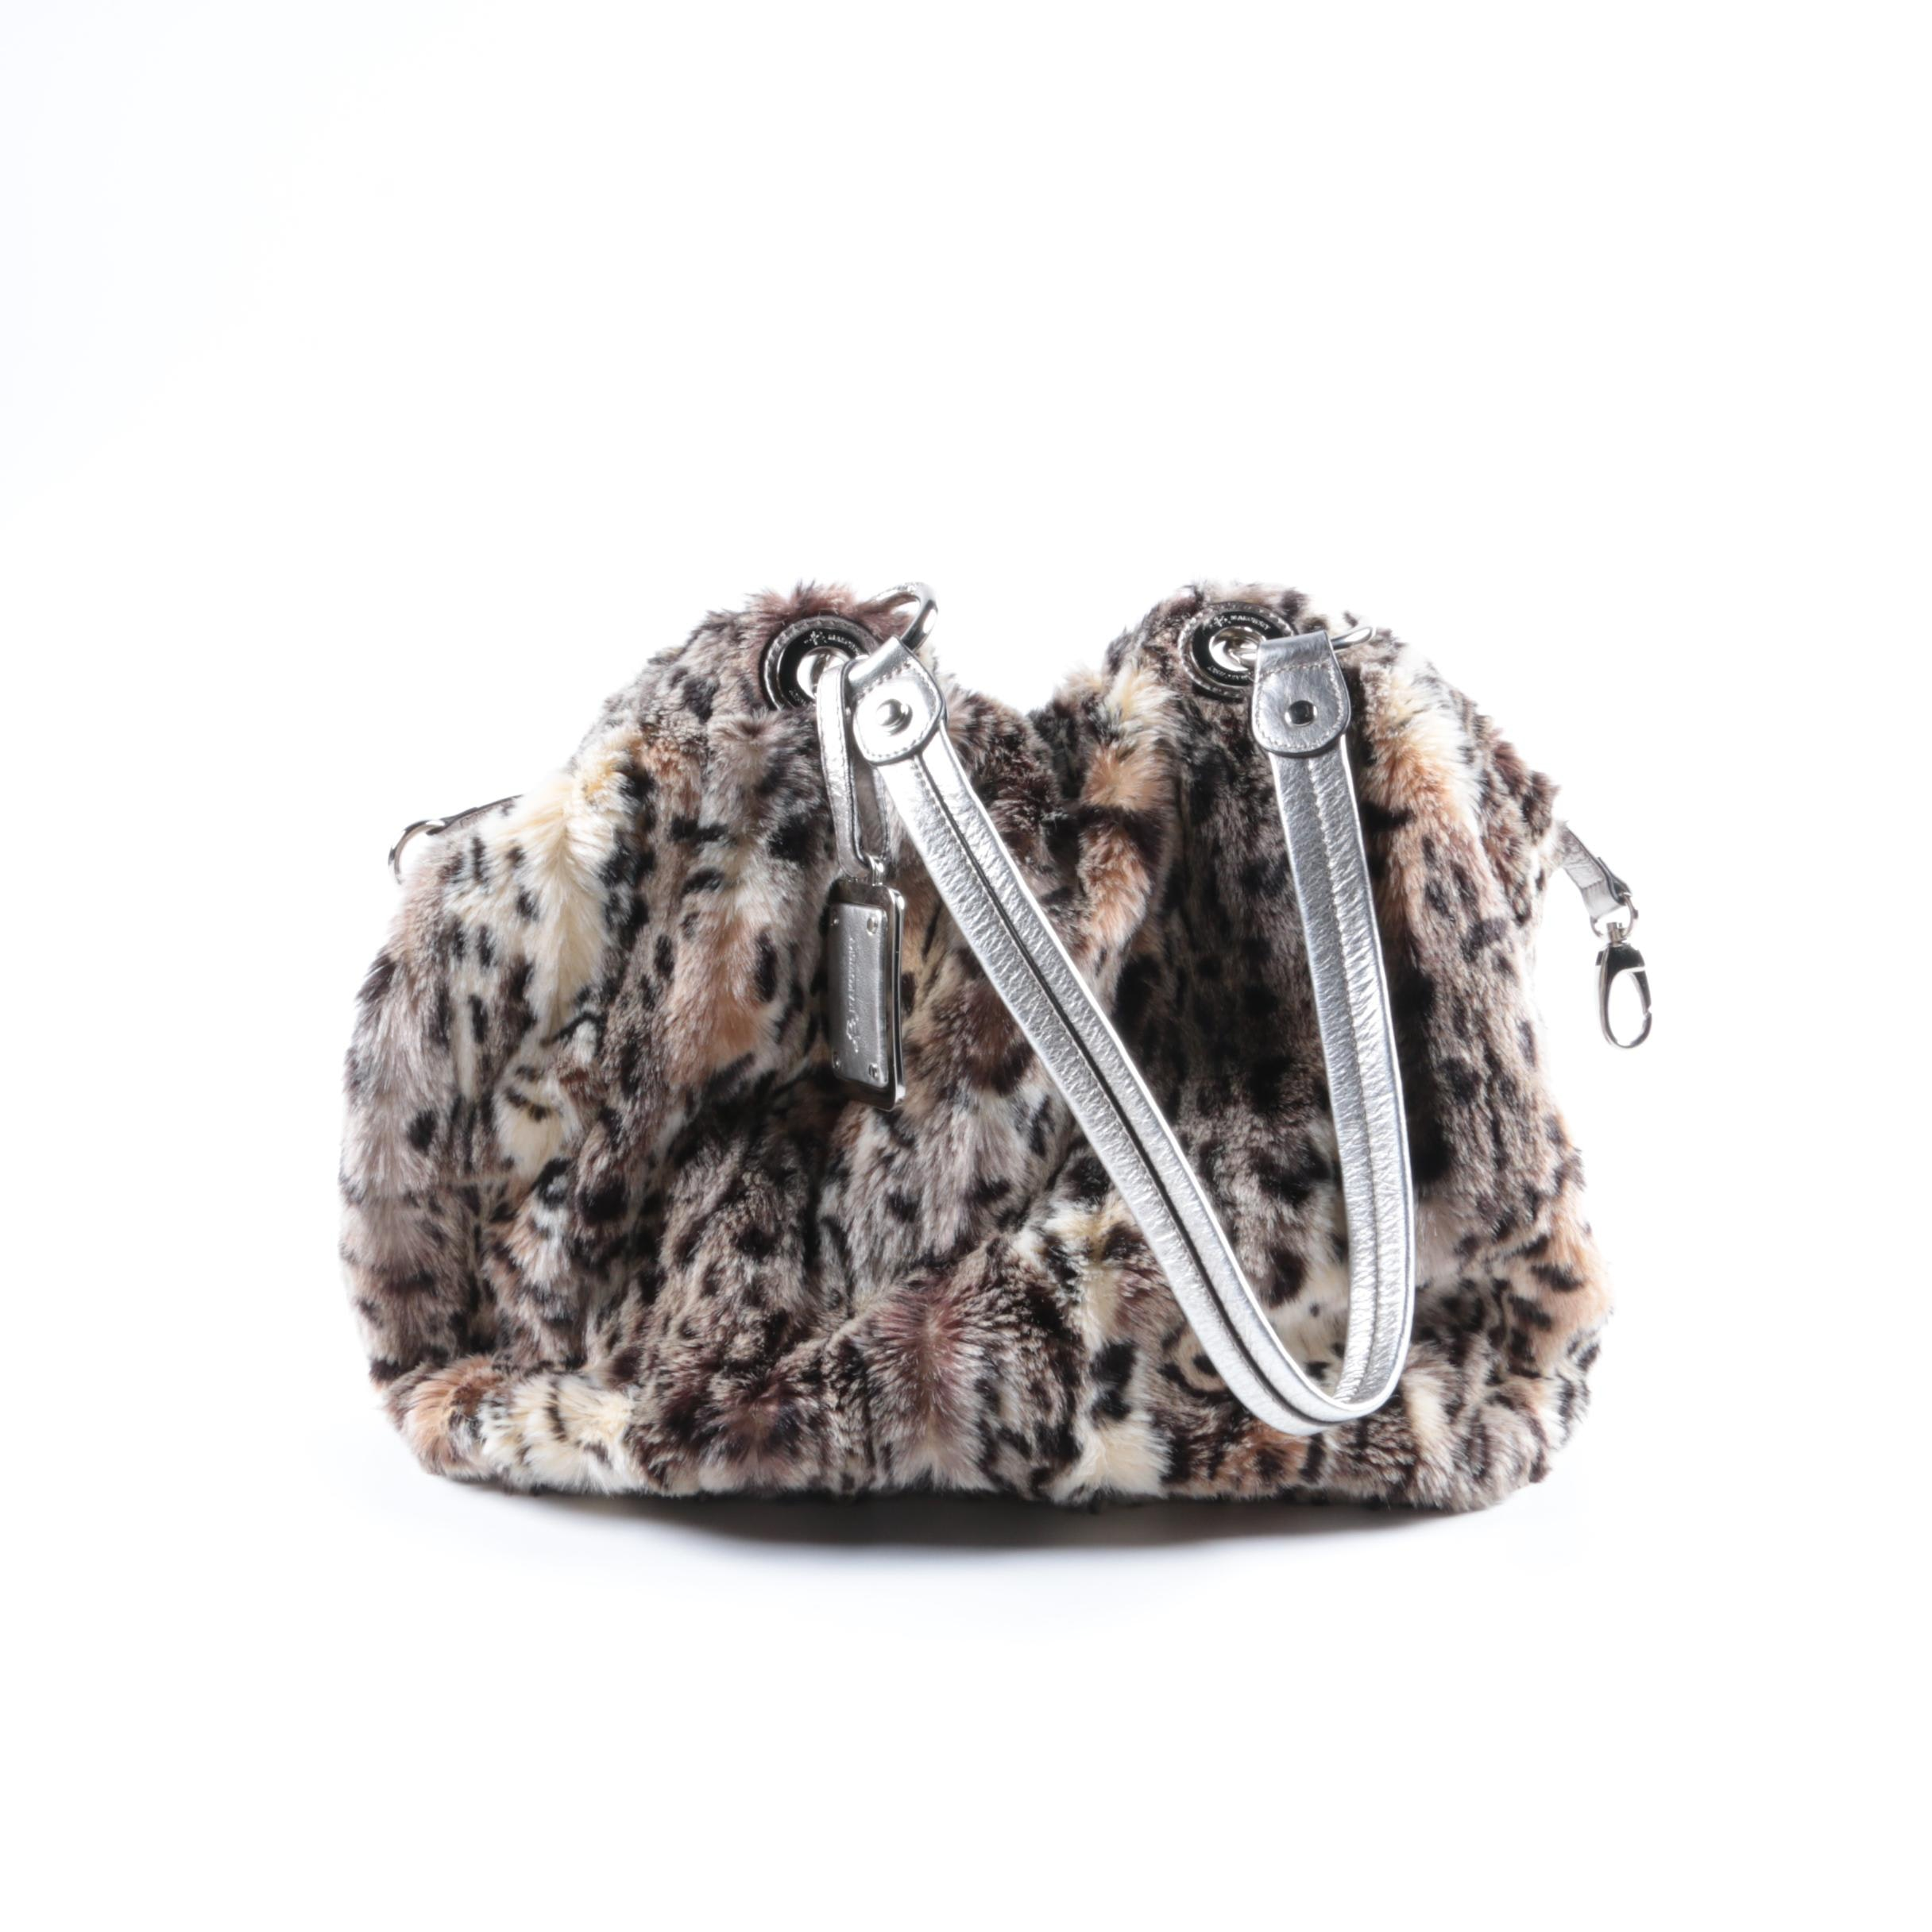 B. Makowsky Silver Leather and Faux Fur Cheetah Shoulder Bag